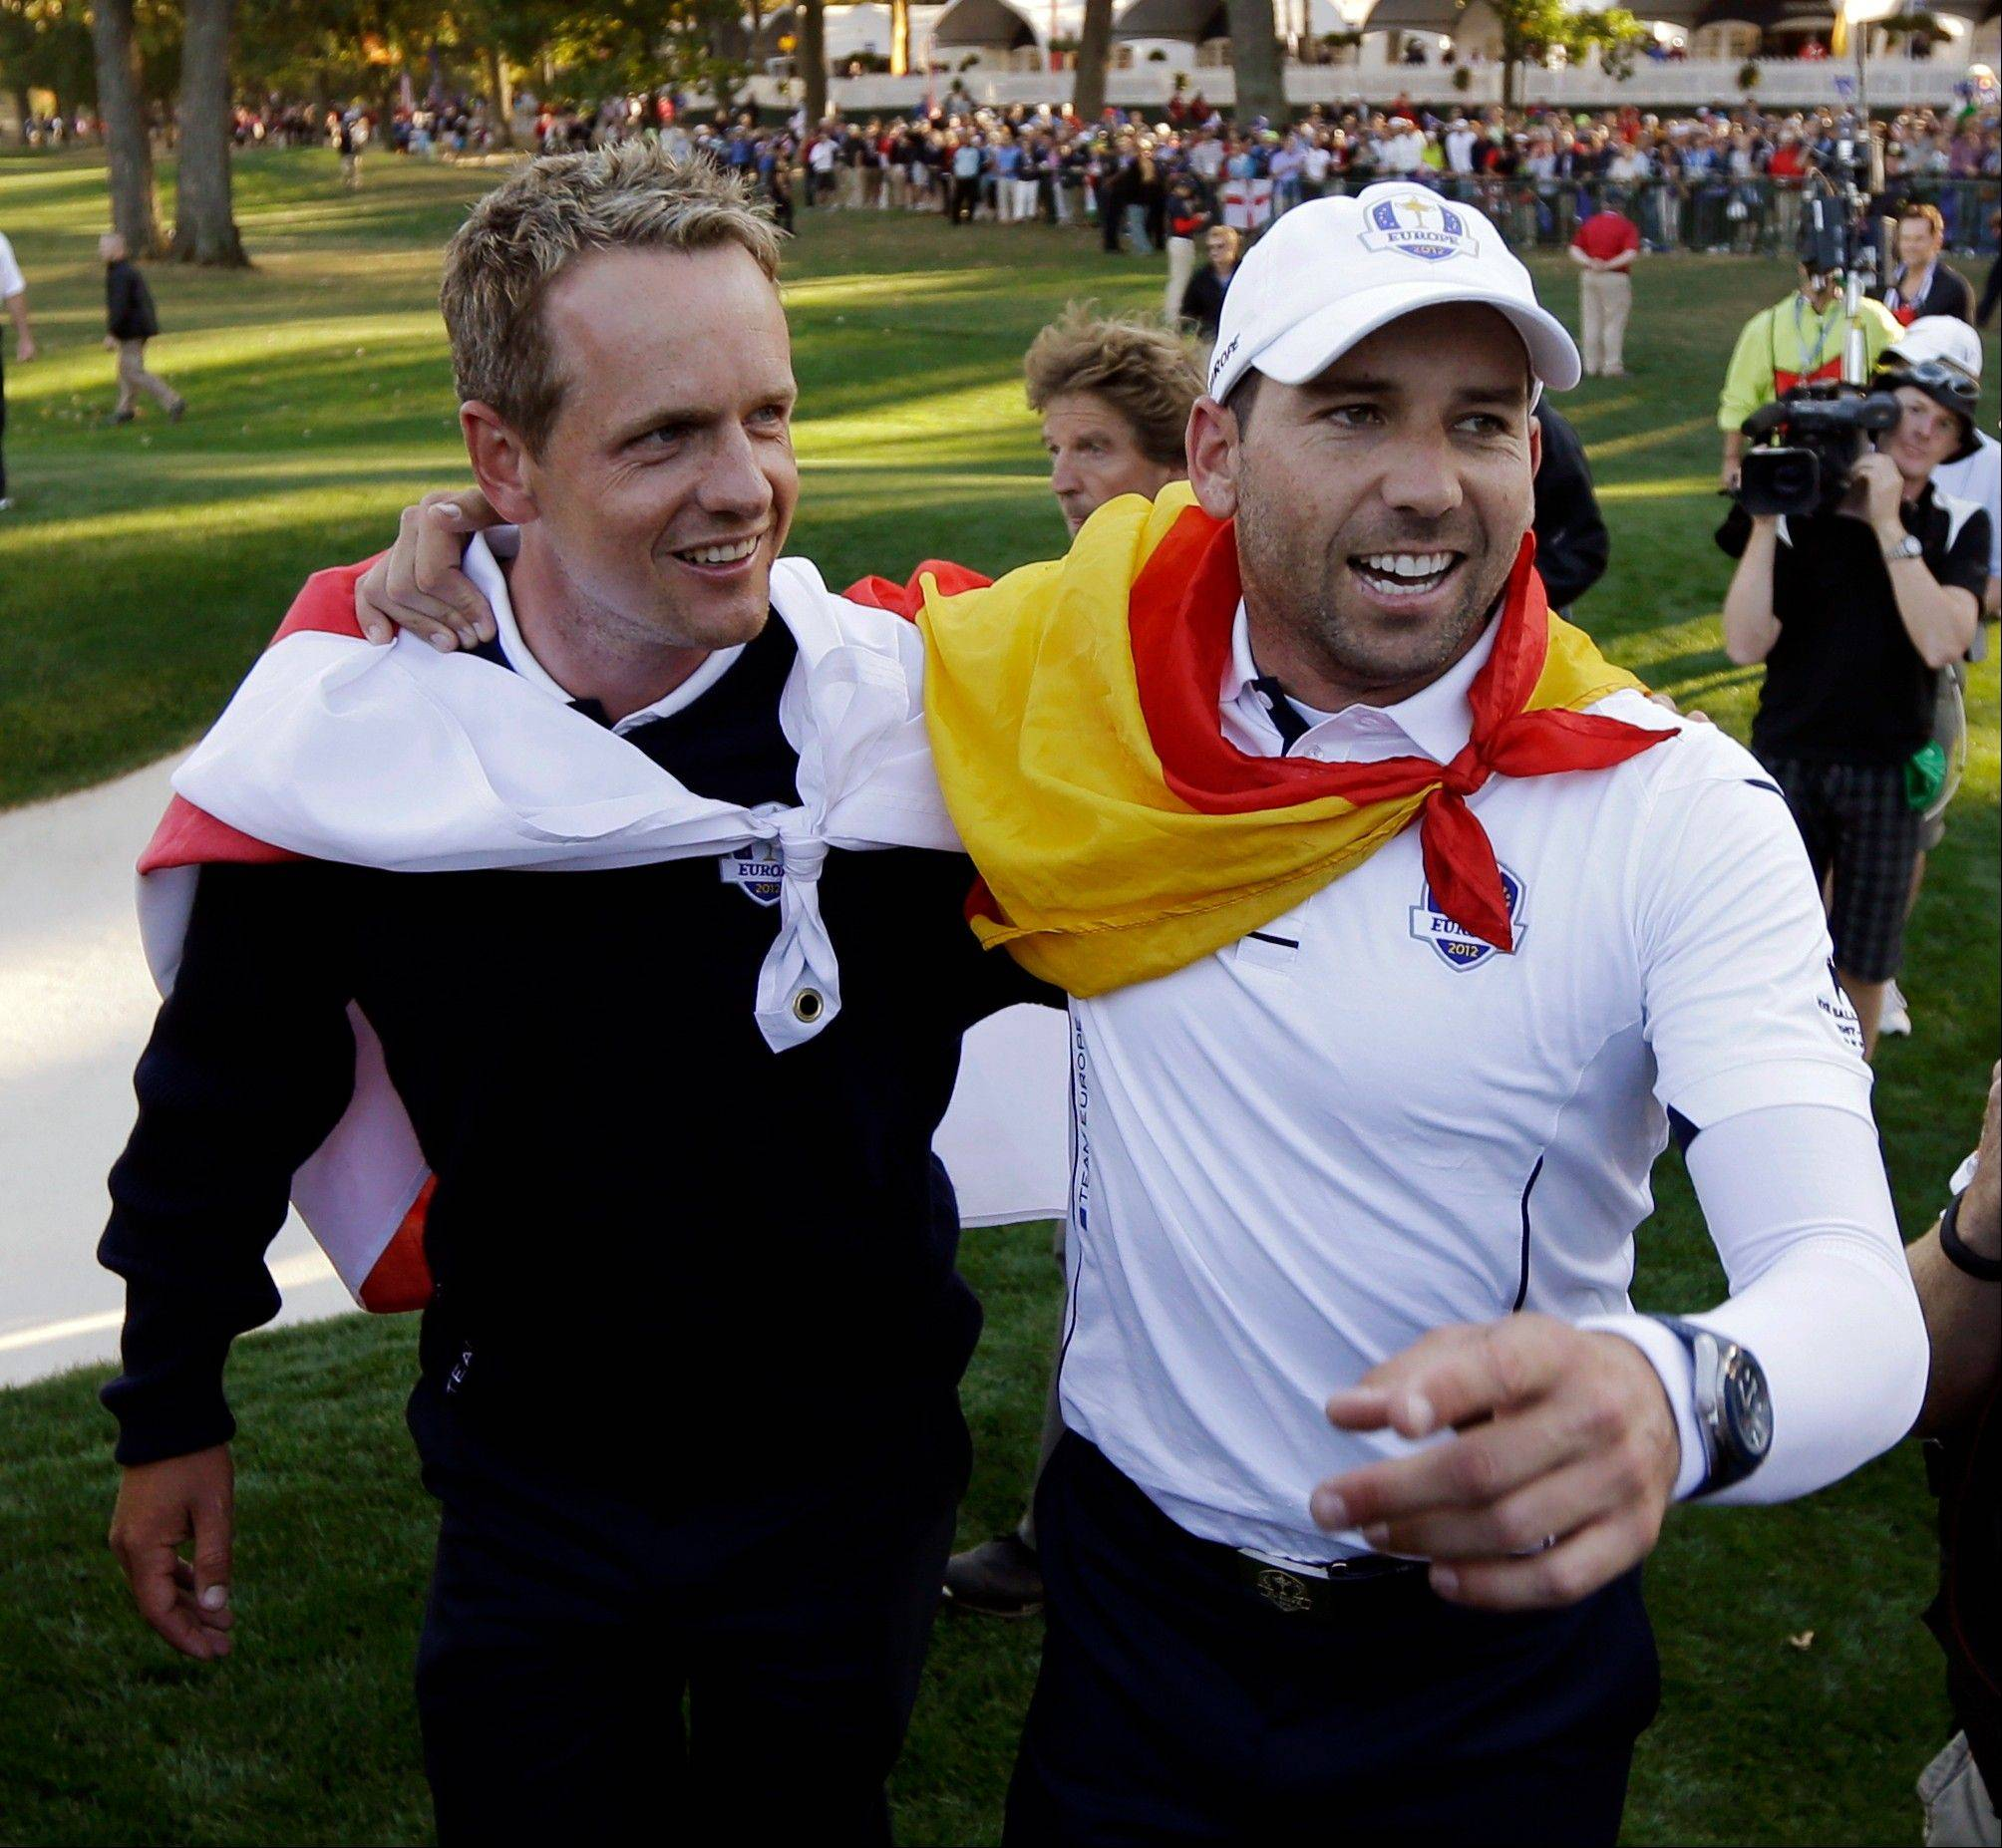 Europe's Sergio Garcia, right, and Luke Donald celebrate after winning the Ryder Cup Sunday at Medinah Country Club.